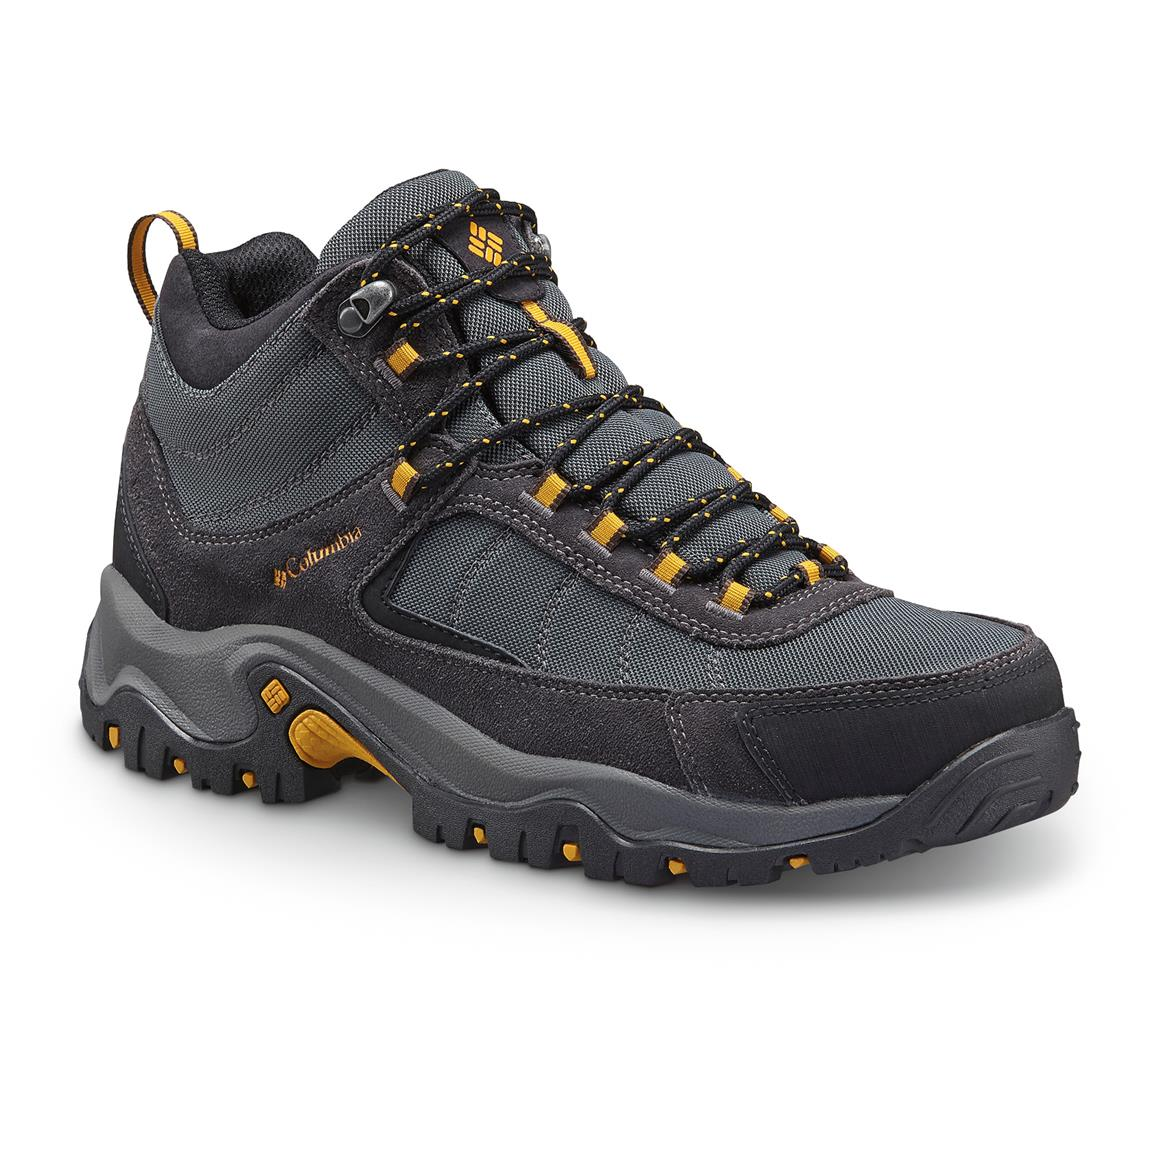 Columbia Men's Granite Ridge Waterproof Mid Hiking Boots, Dark Gray